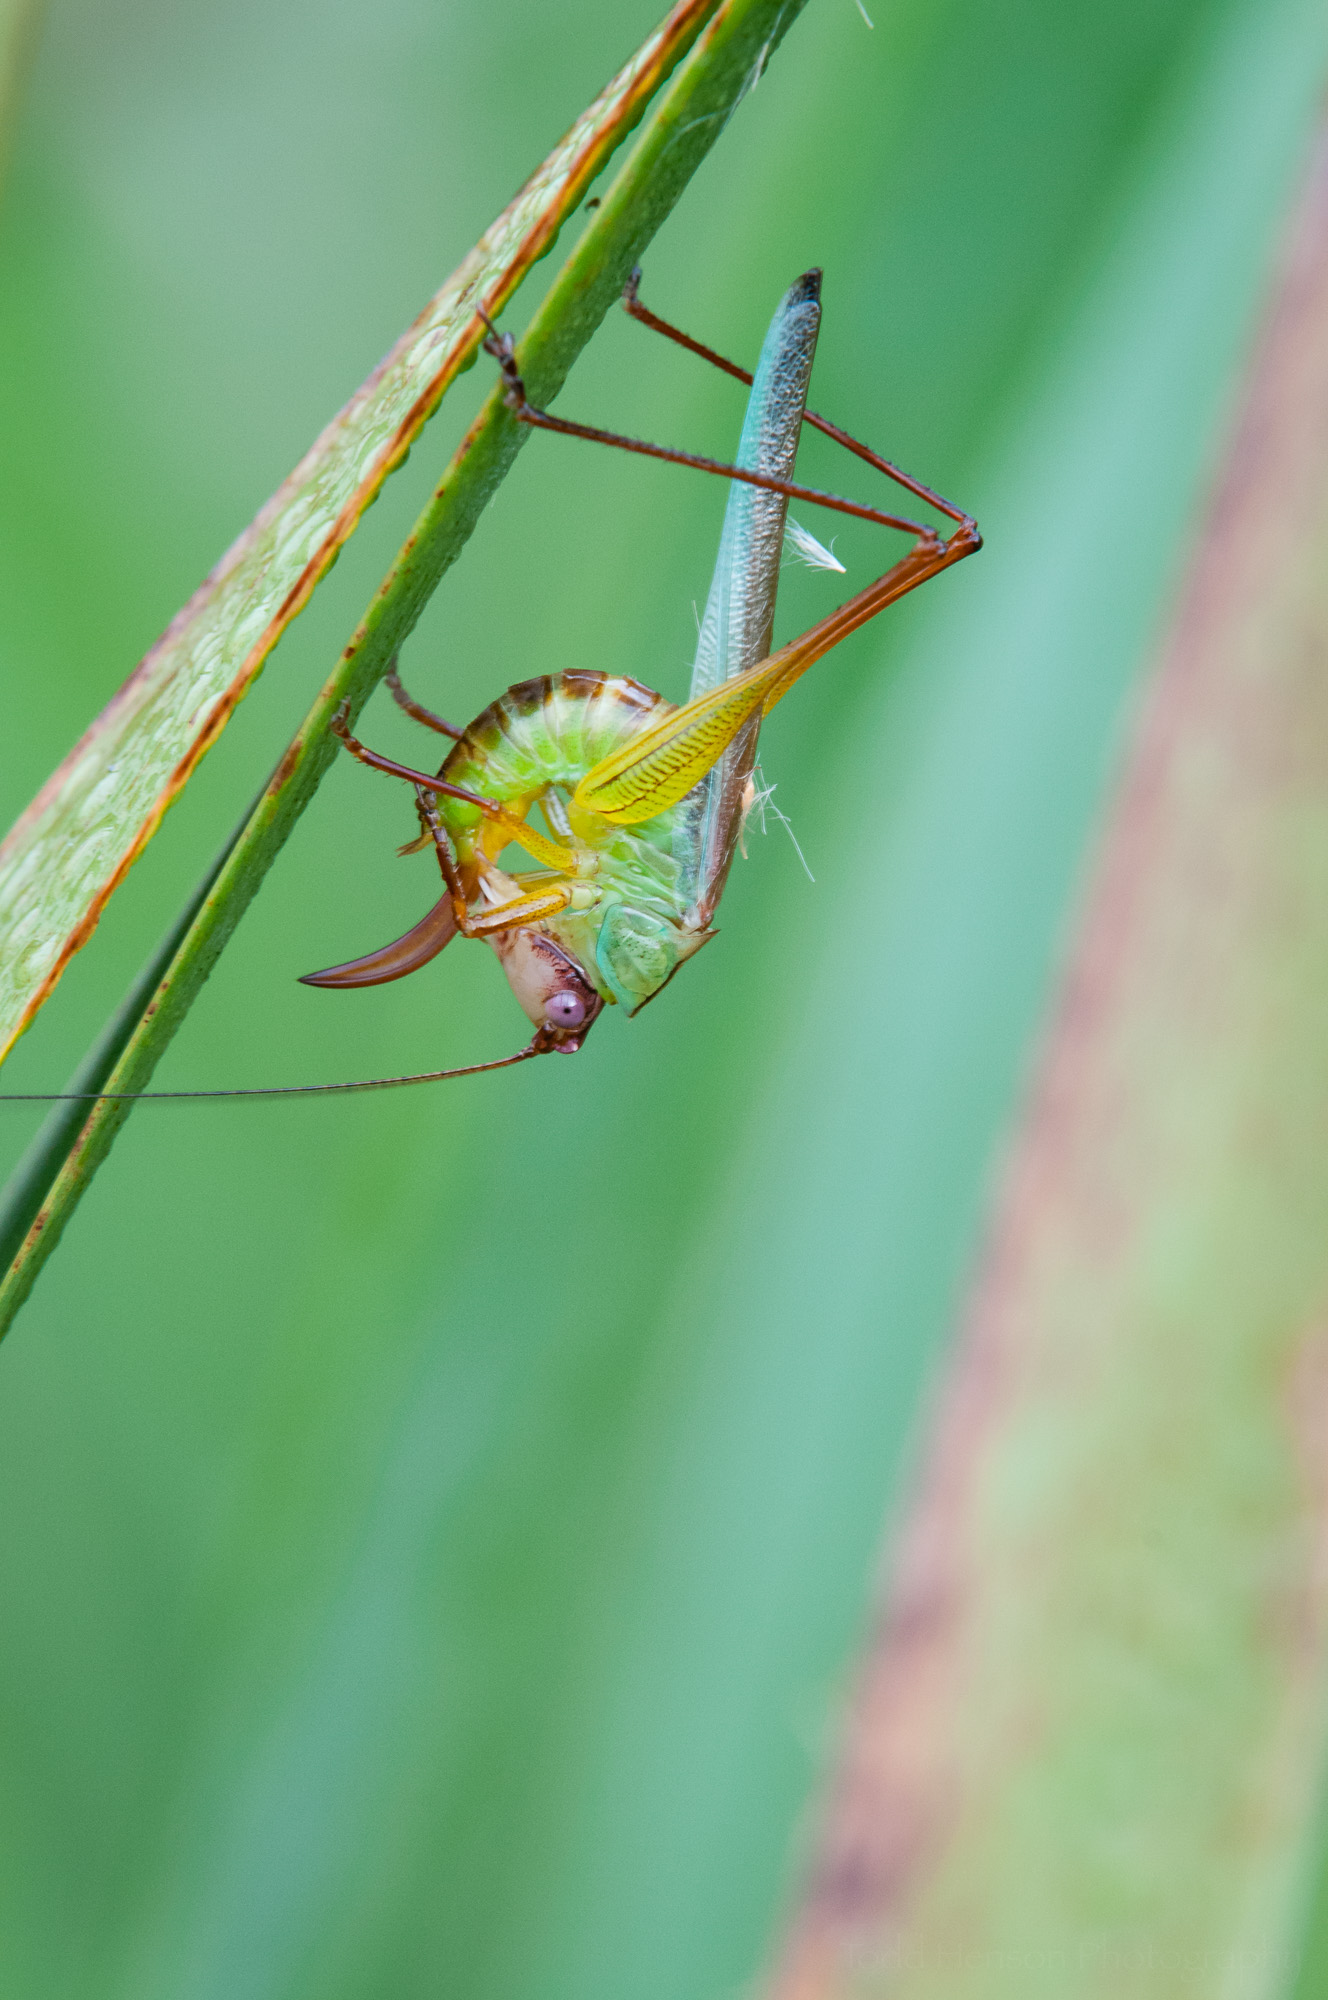 Fourth of a sequence of a katydid cleaning itself.